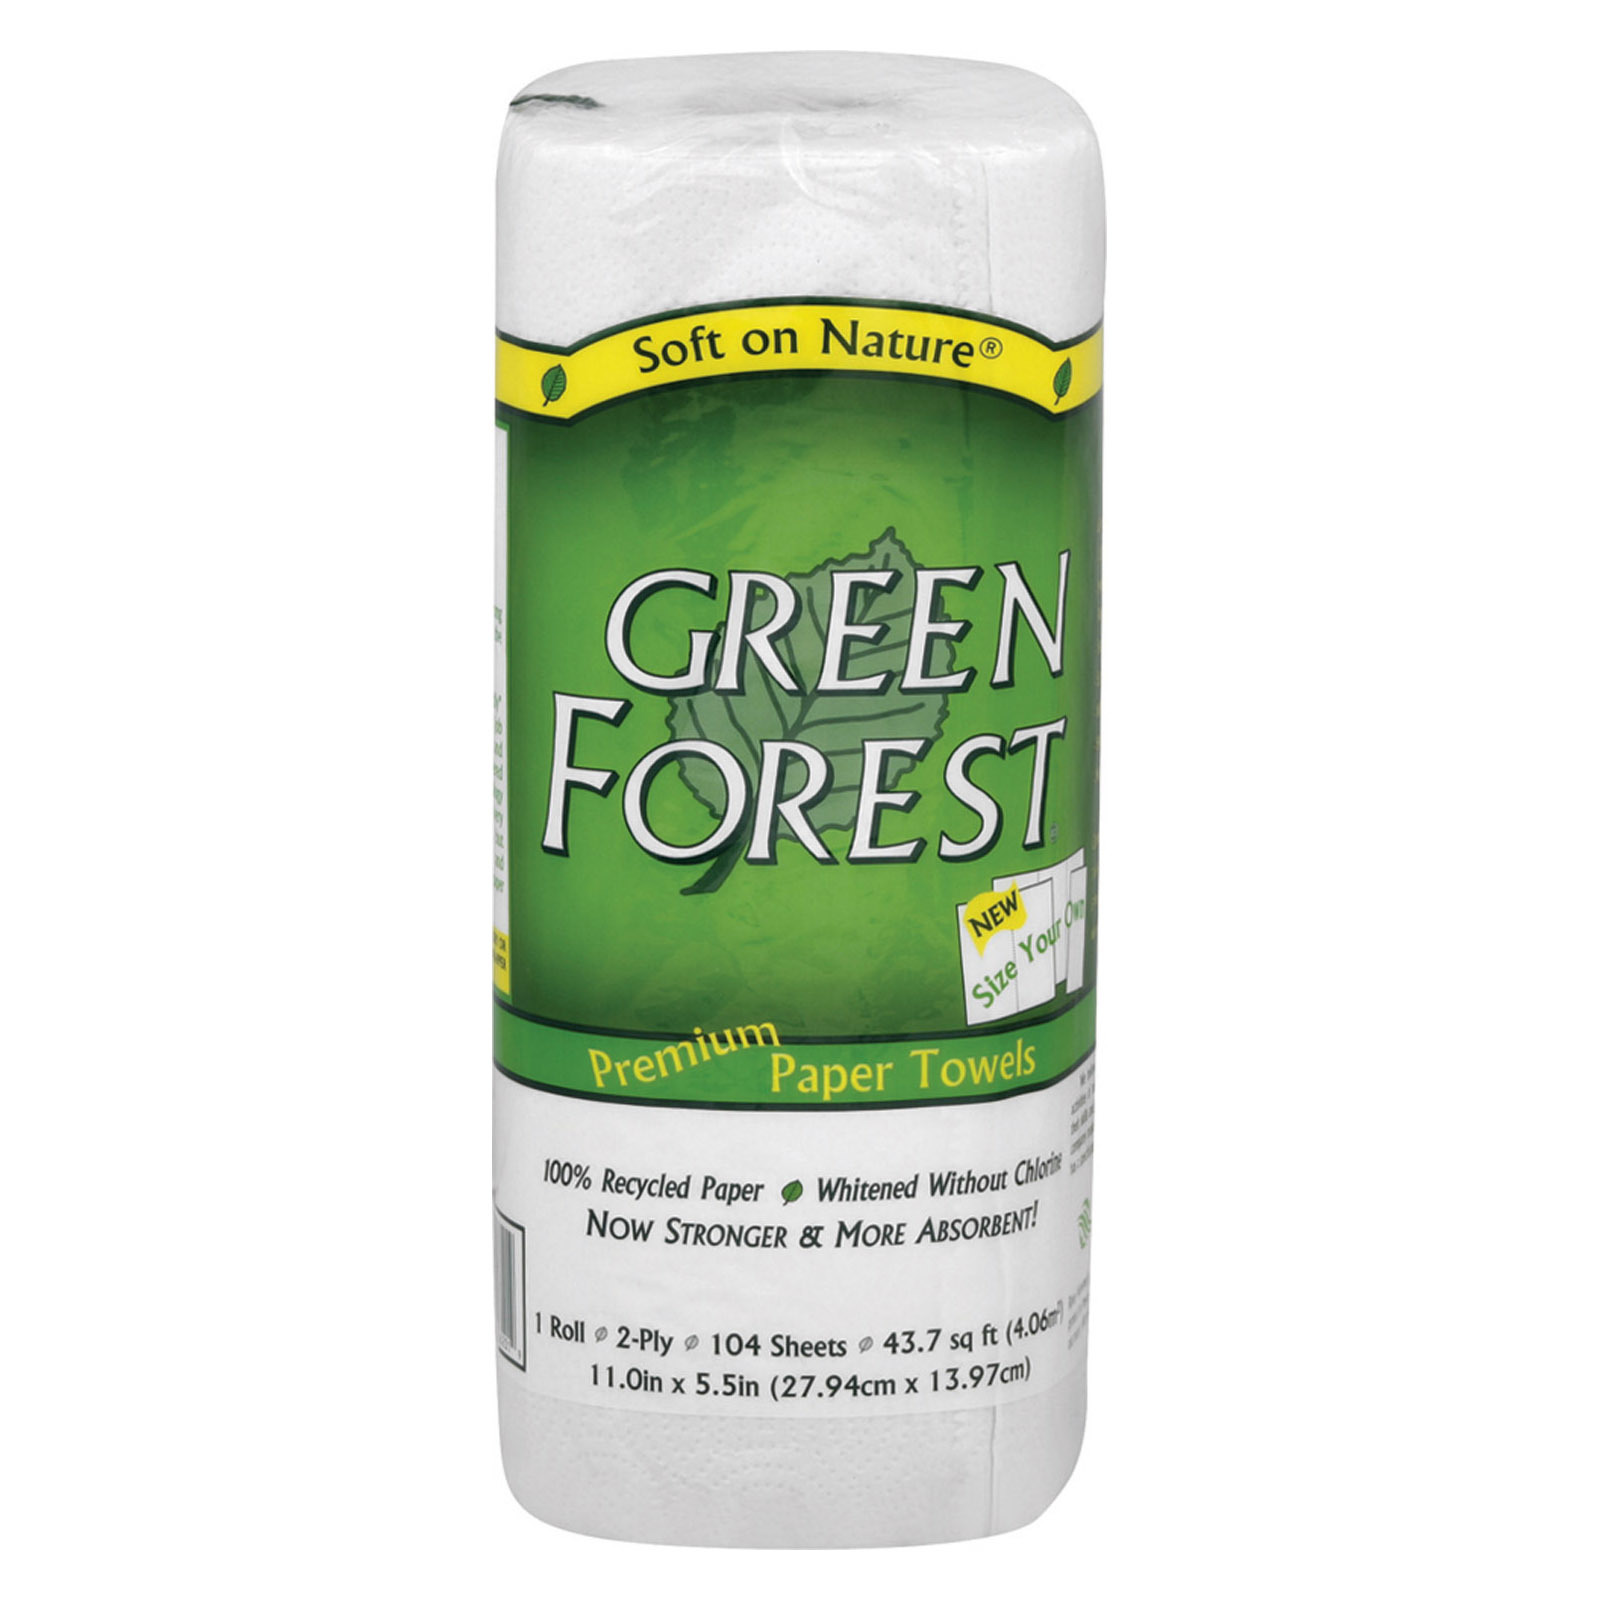 Green Forest Premium Paper Towel - Case of 30 - 1 Roll